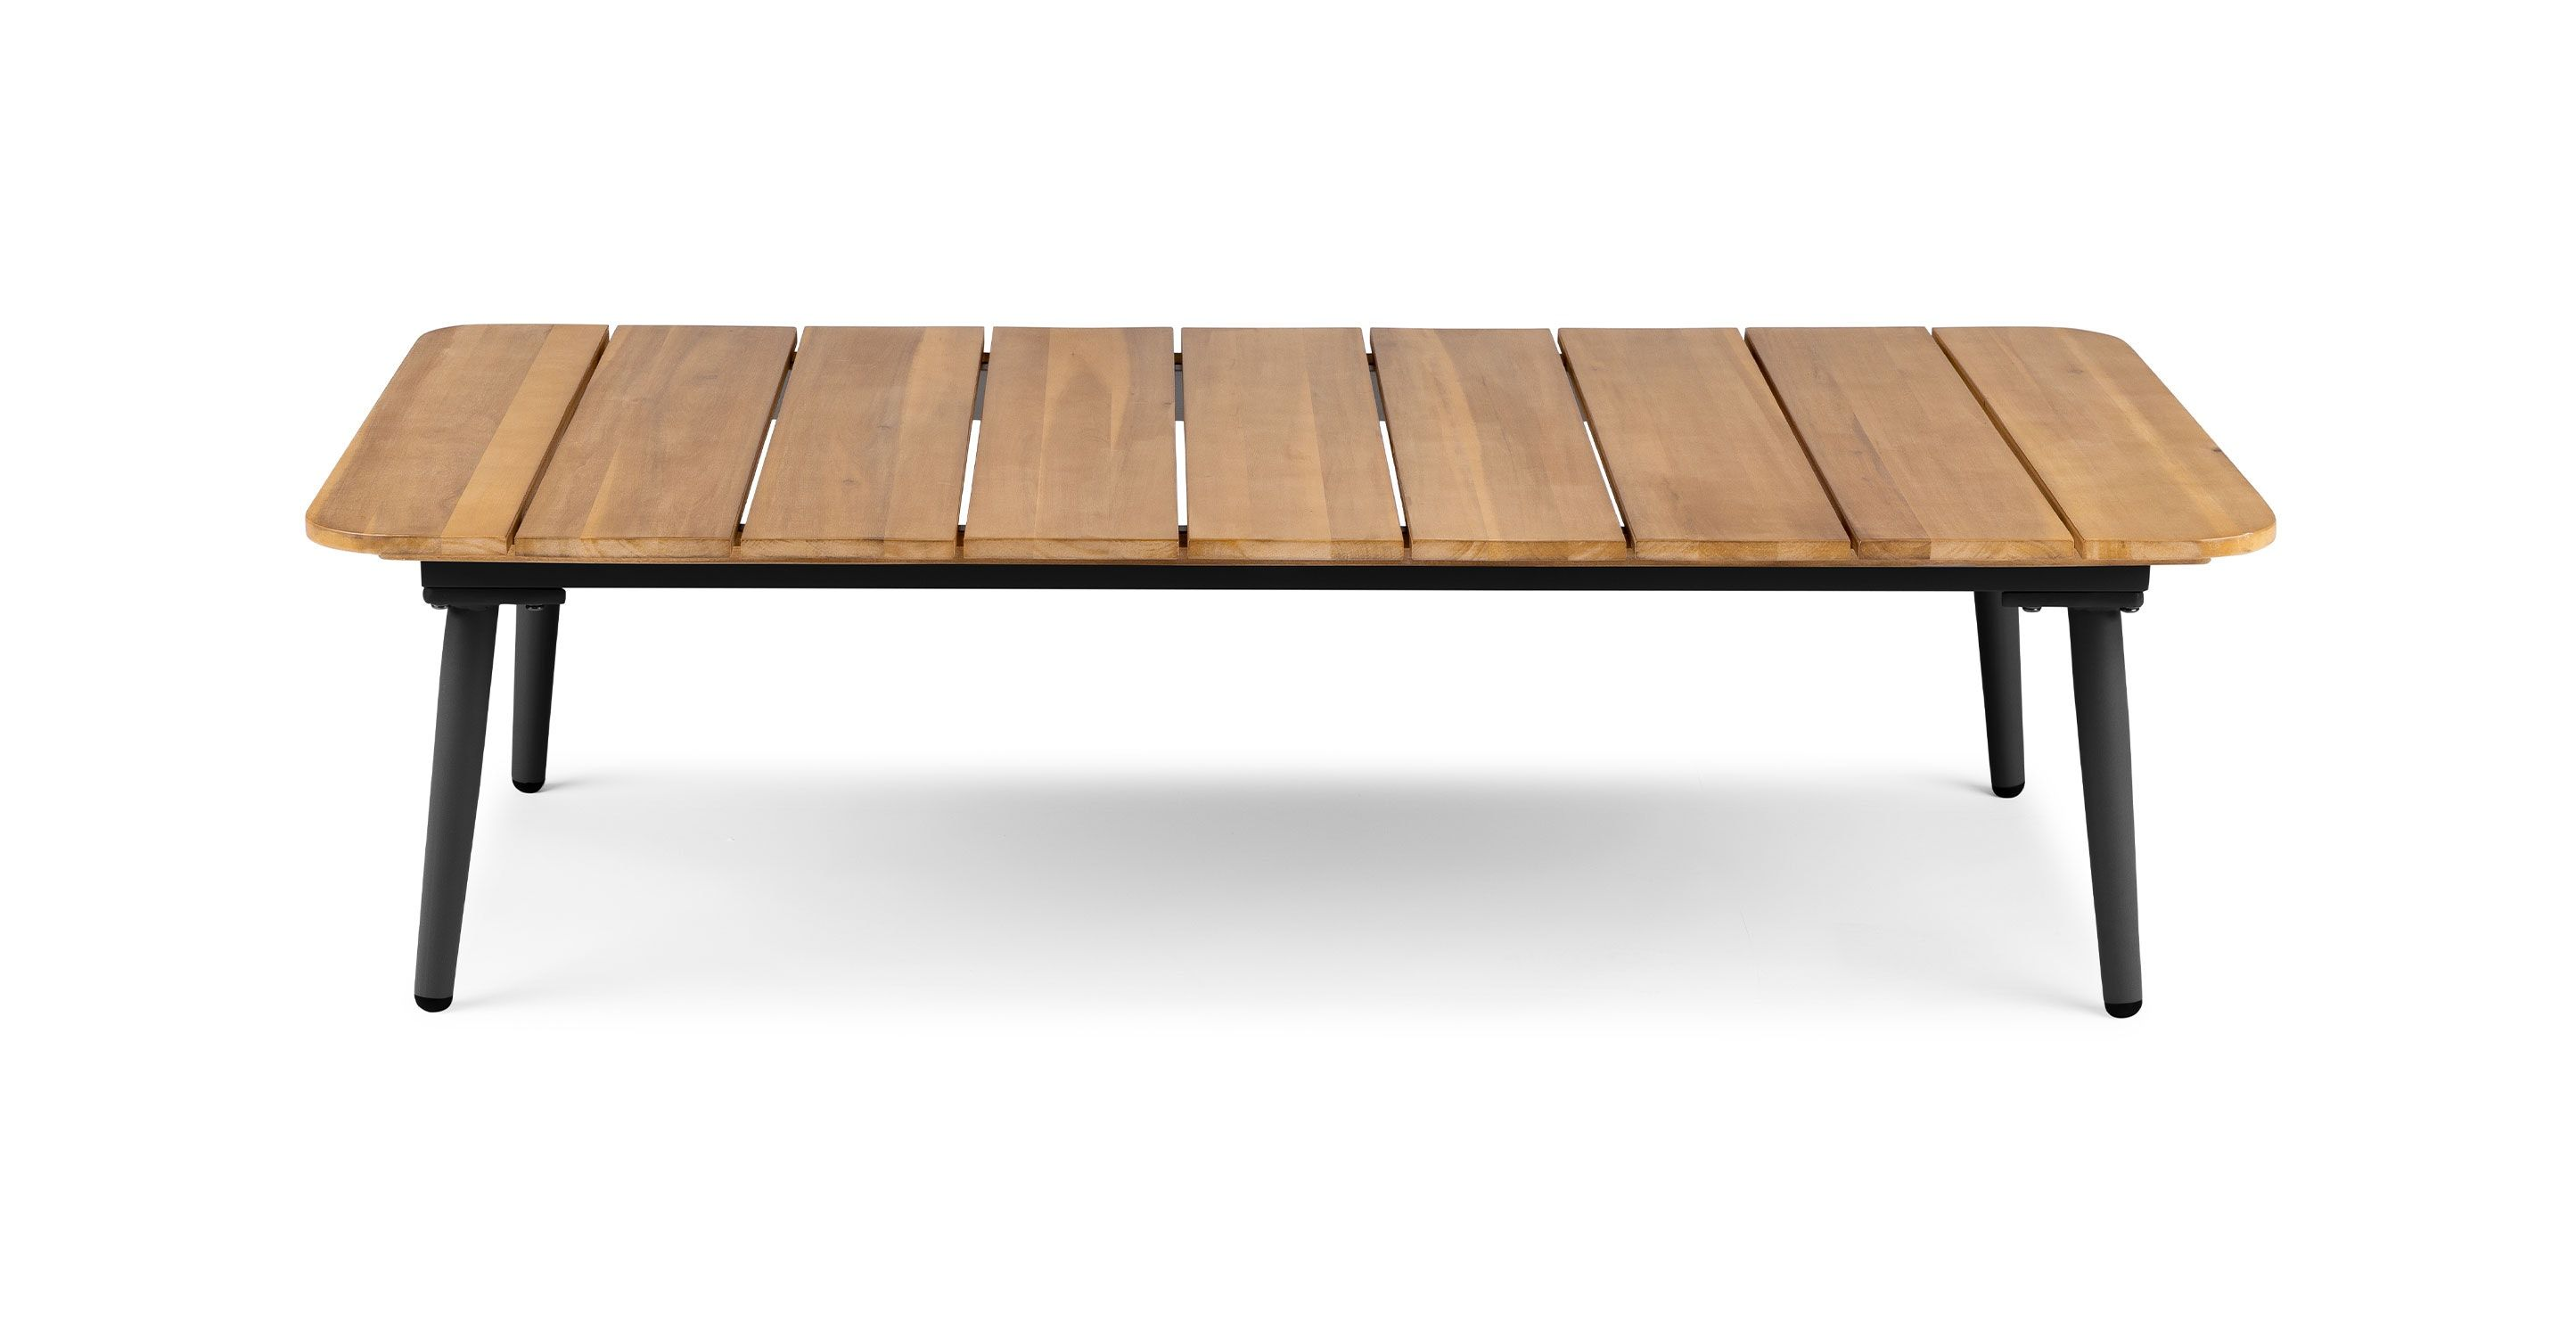 Latta Slate Gray Coffee Table Coffee Table Mid Century Modern Coffee Table Contemporary Outdoor Furniture [ 1500 x 2890 Pixel ]